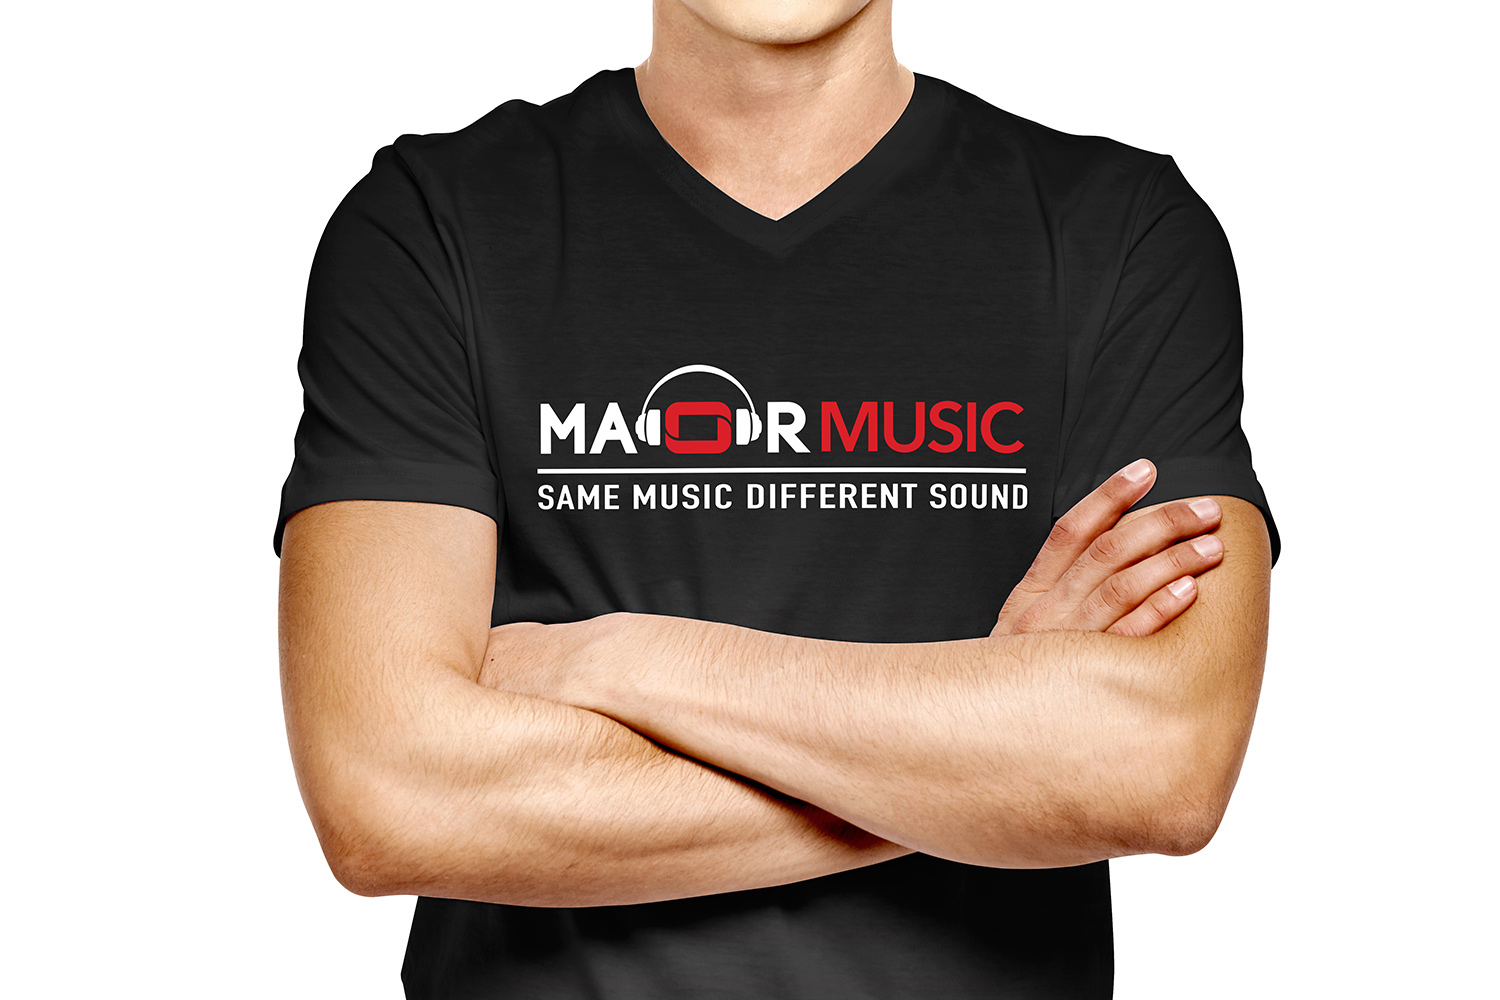 mm_music_shirt